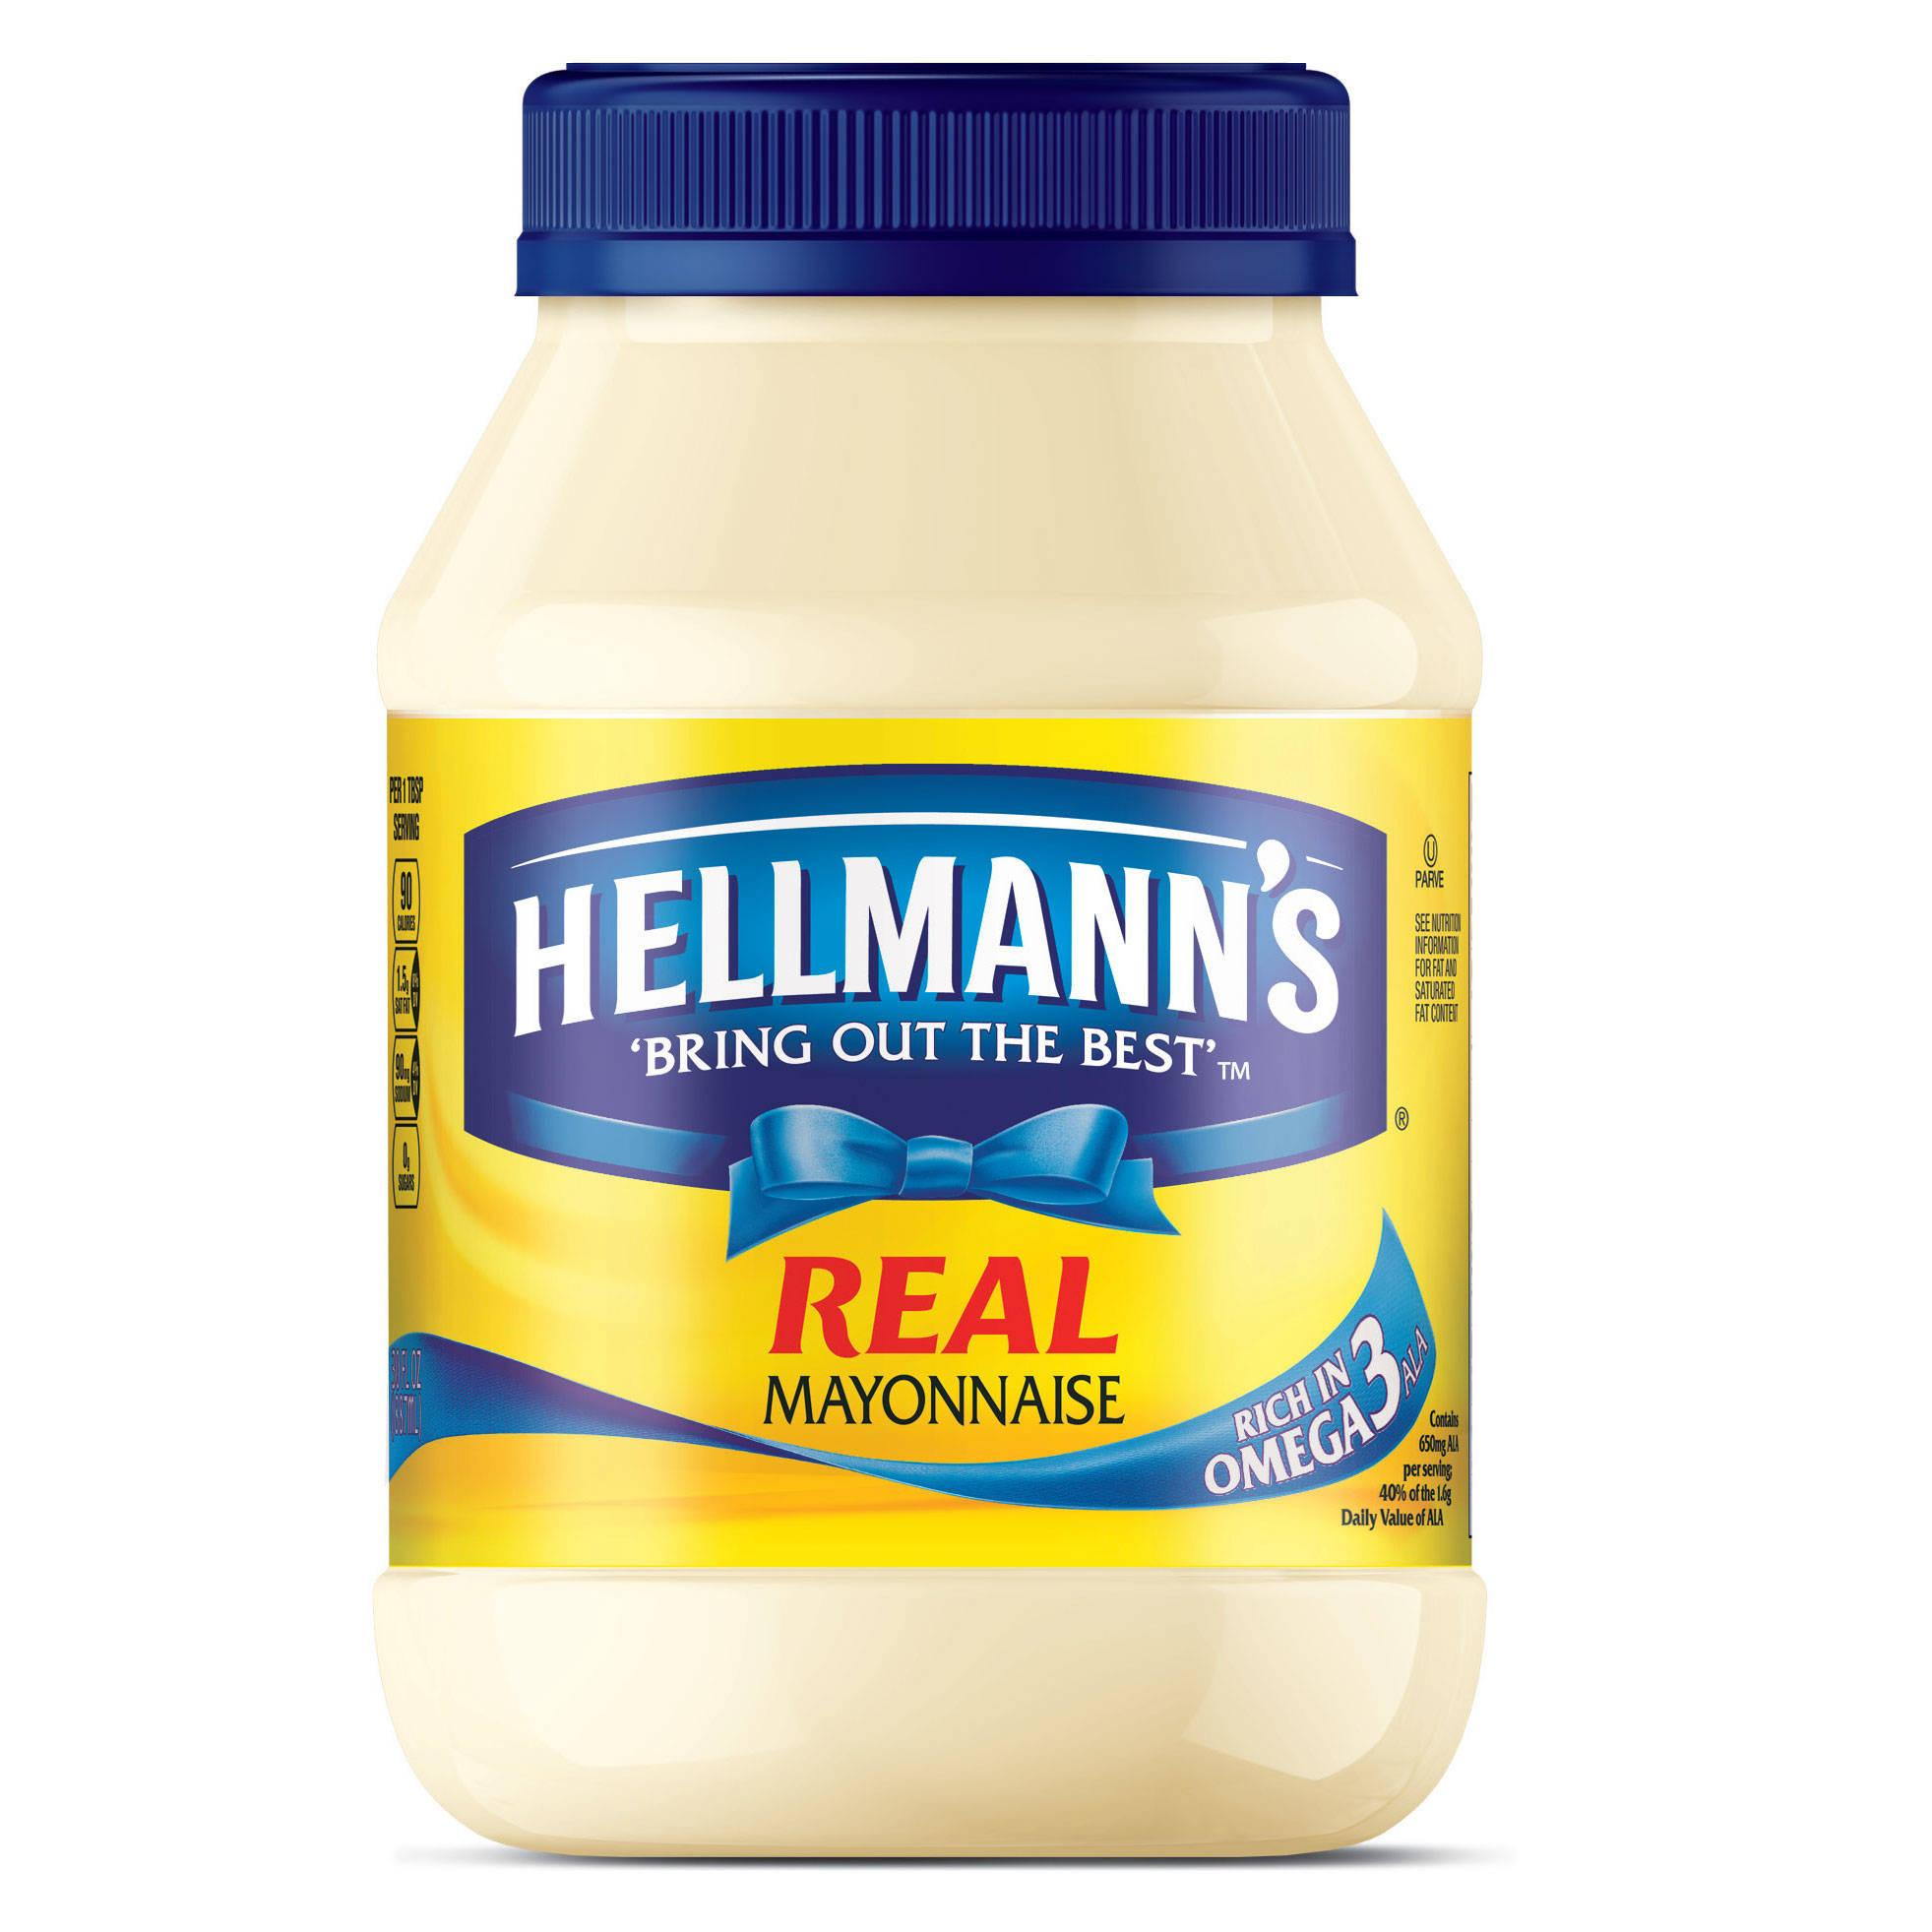 Amazon.com: Hellmann's Mayonnaise, Real 30 oz: Prime Pantry